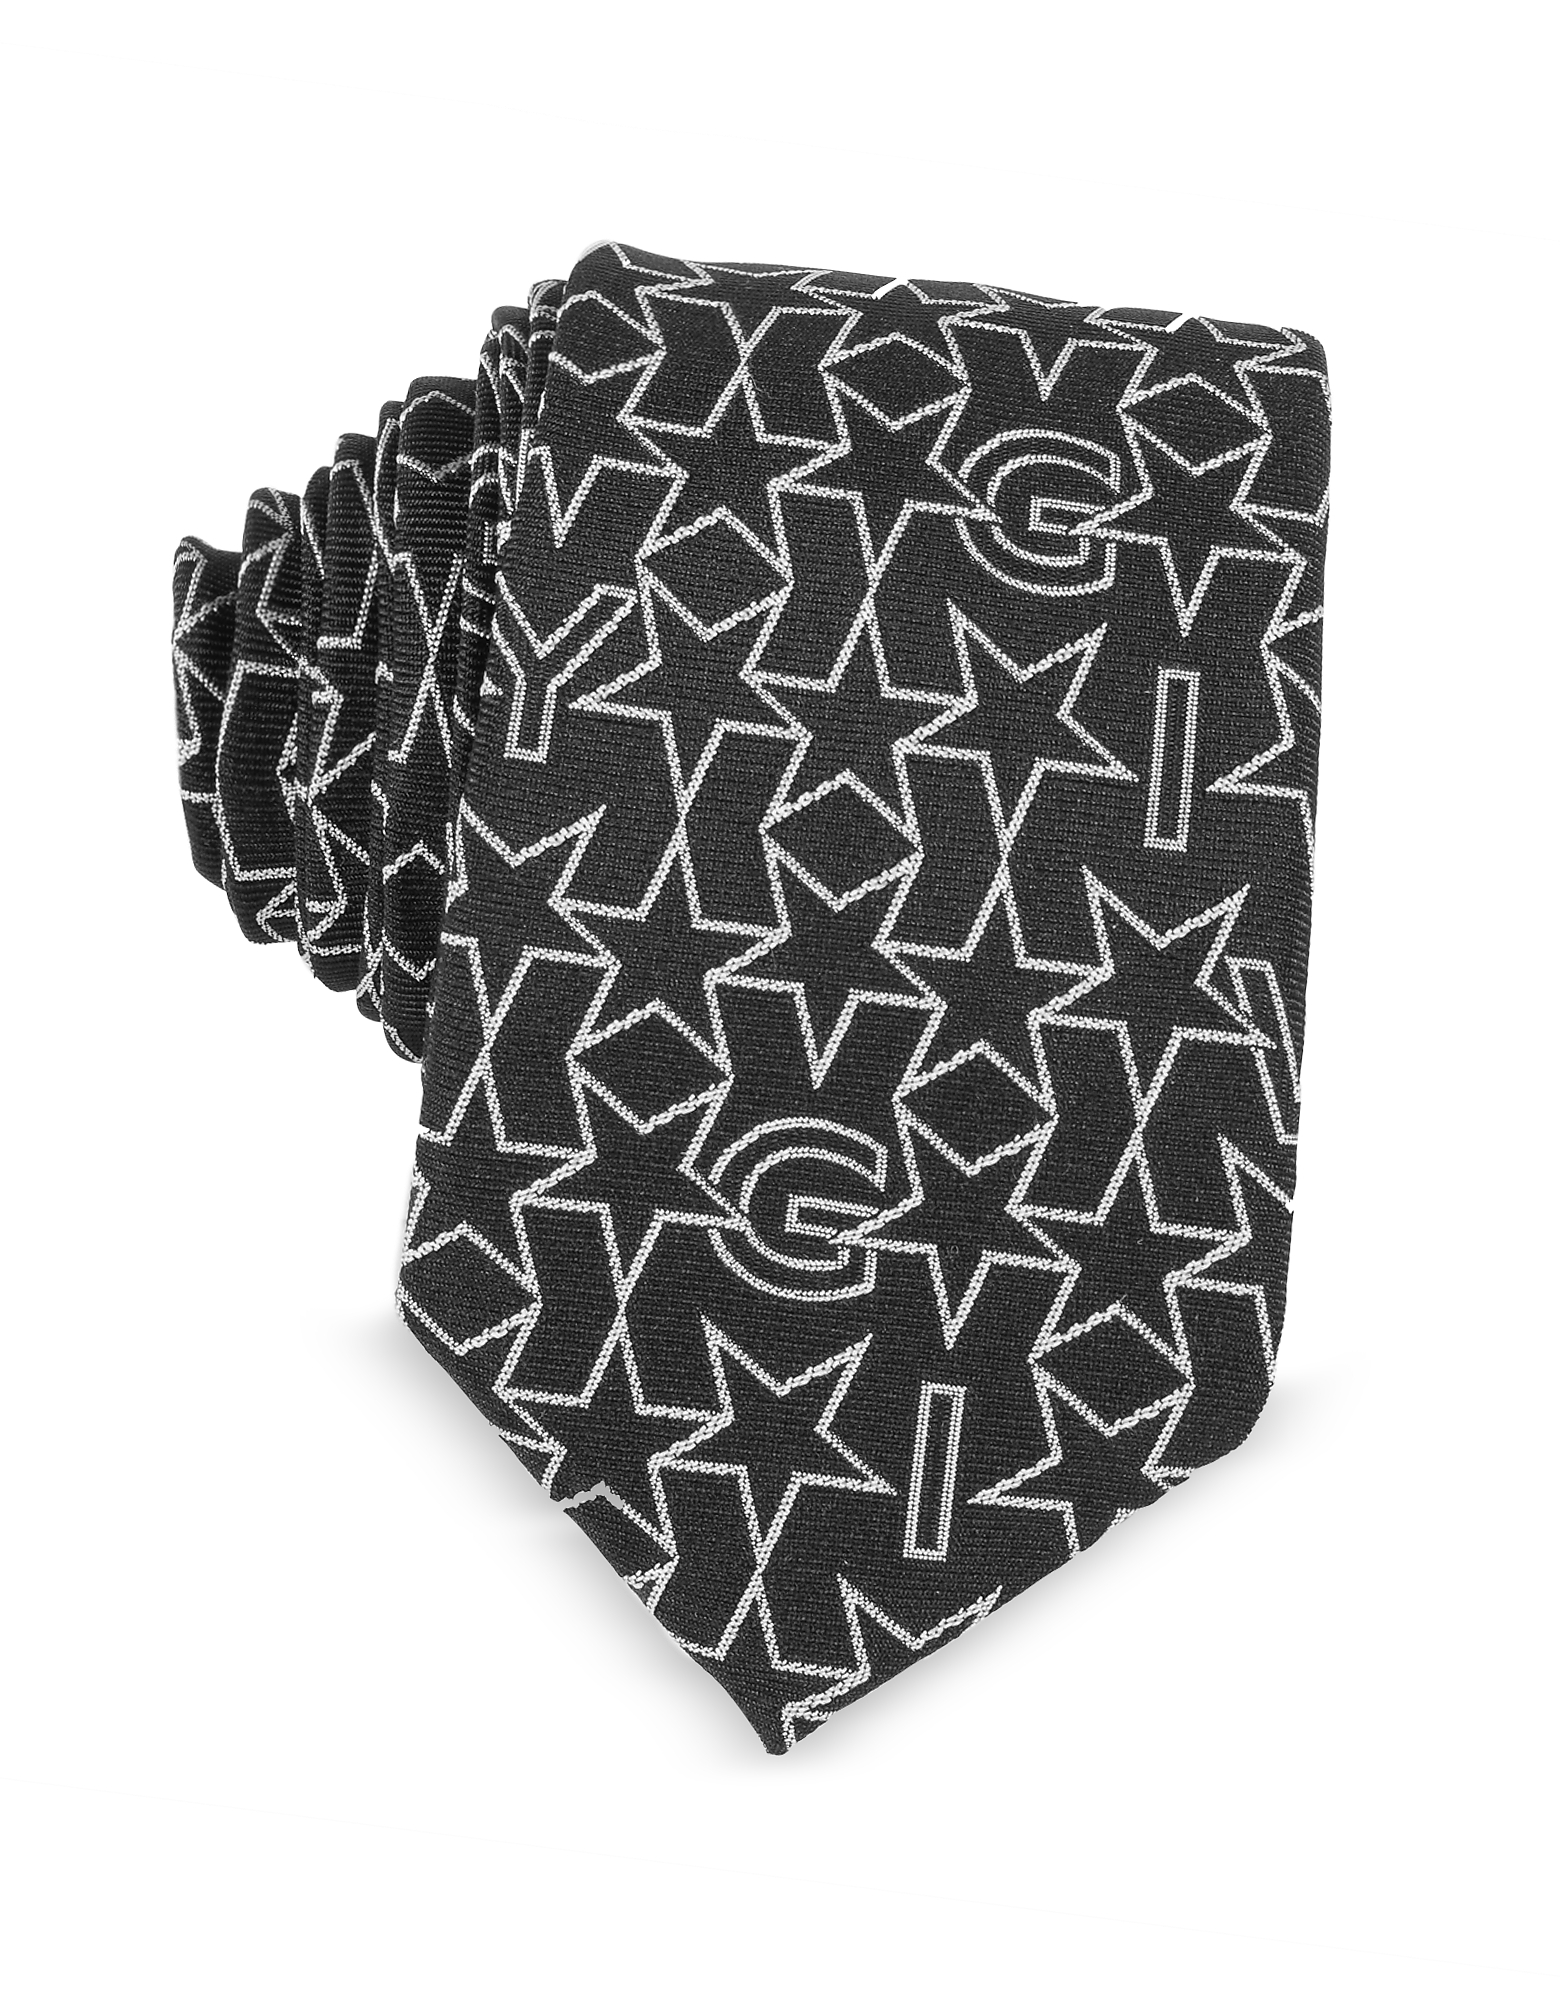 Givenchy Ties, Black Silk Narrow Tie w/Silver Woven Stars